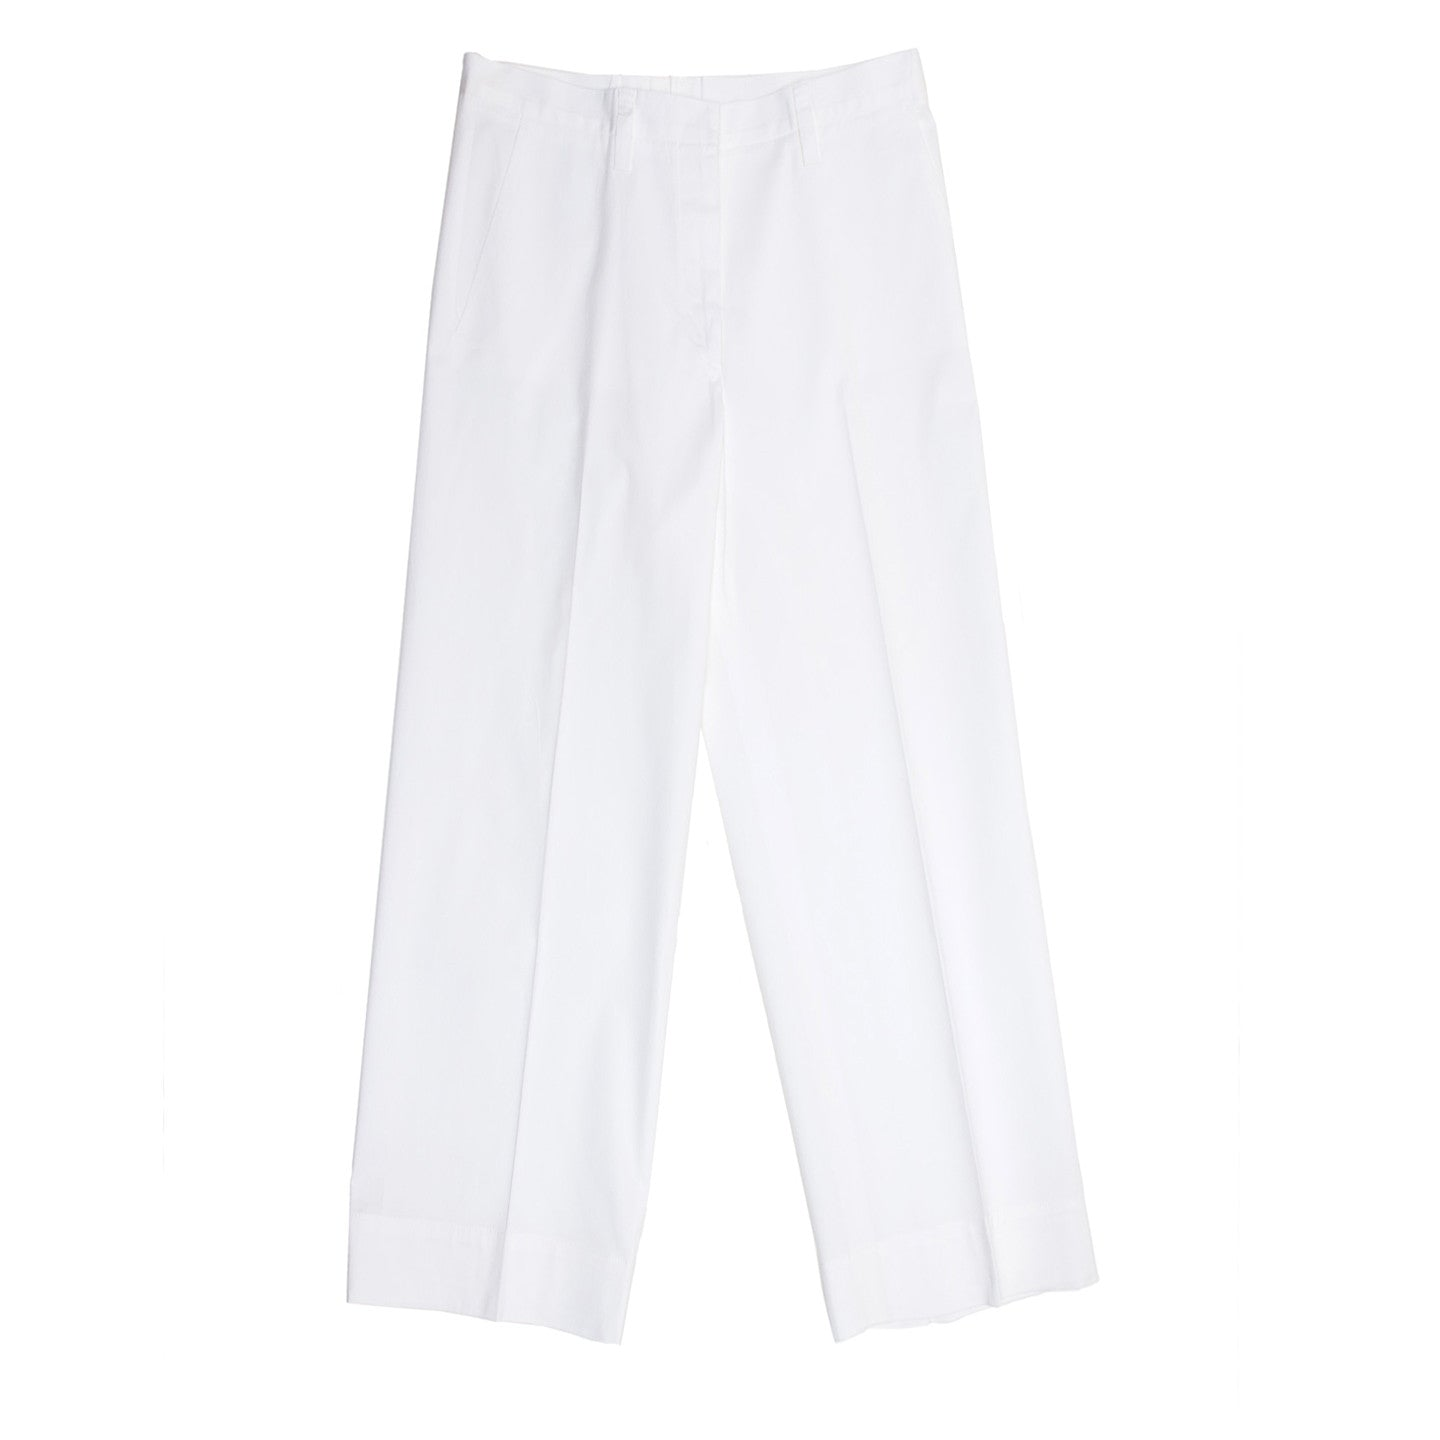 Find authentic preowned Jil Sander White Cotton Cropped Pants, size 44 (French) at BunnyJack, where a portion of every sale goes to charity.